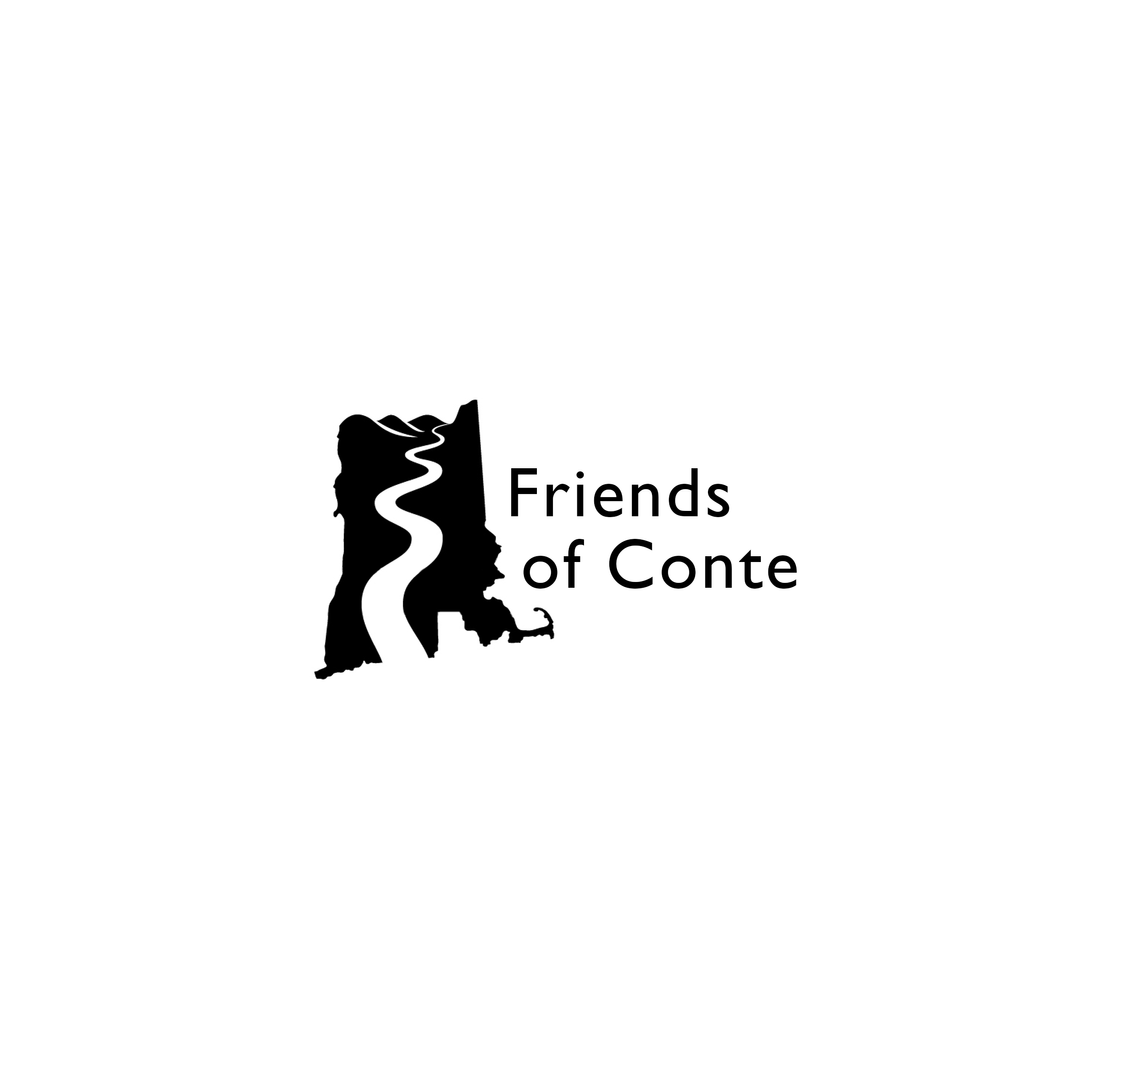 Friends of Conte Logo Design